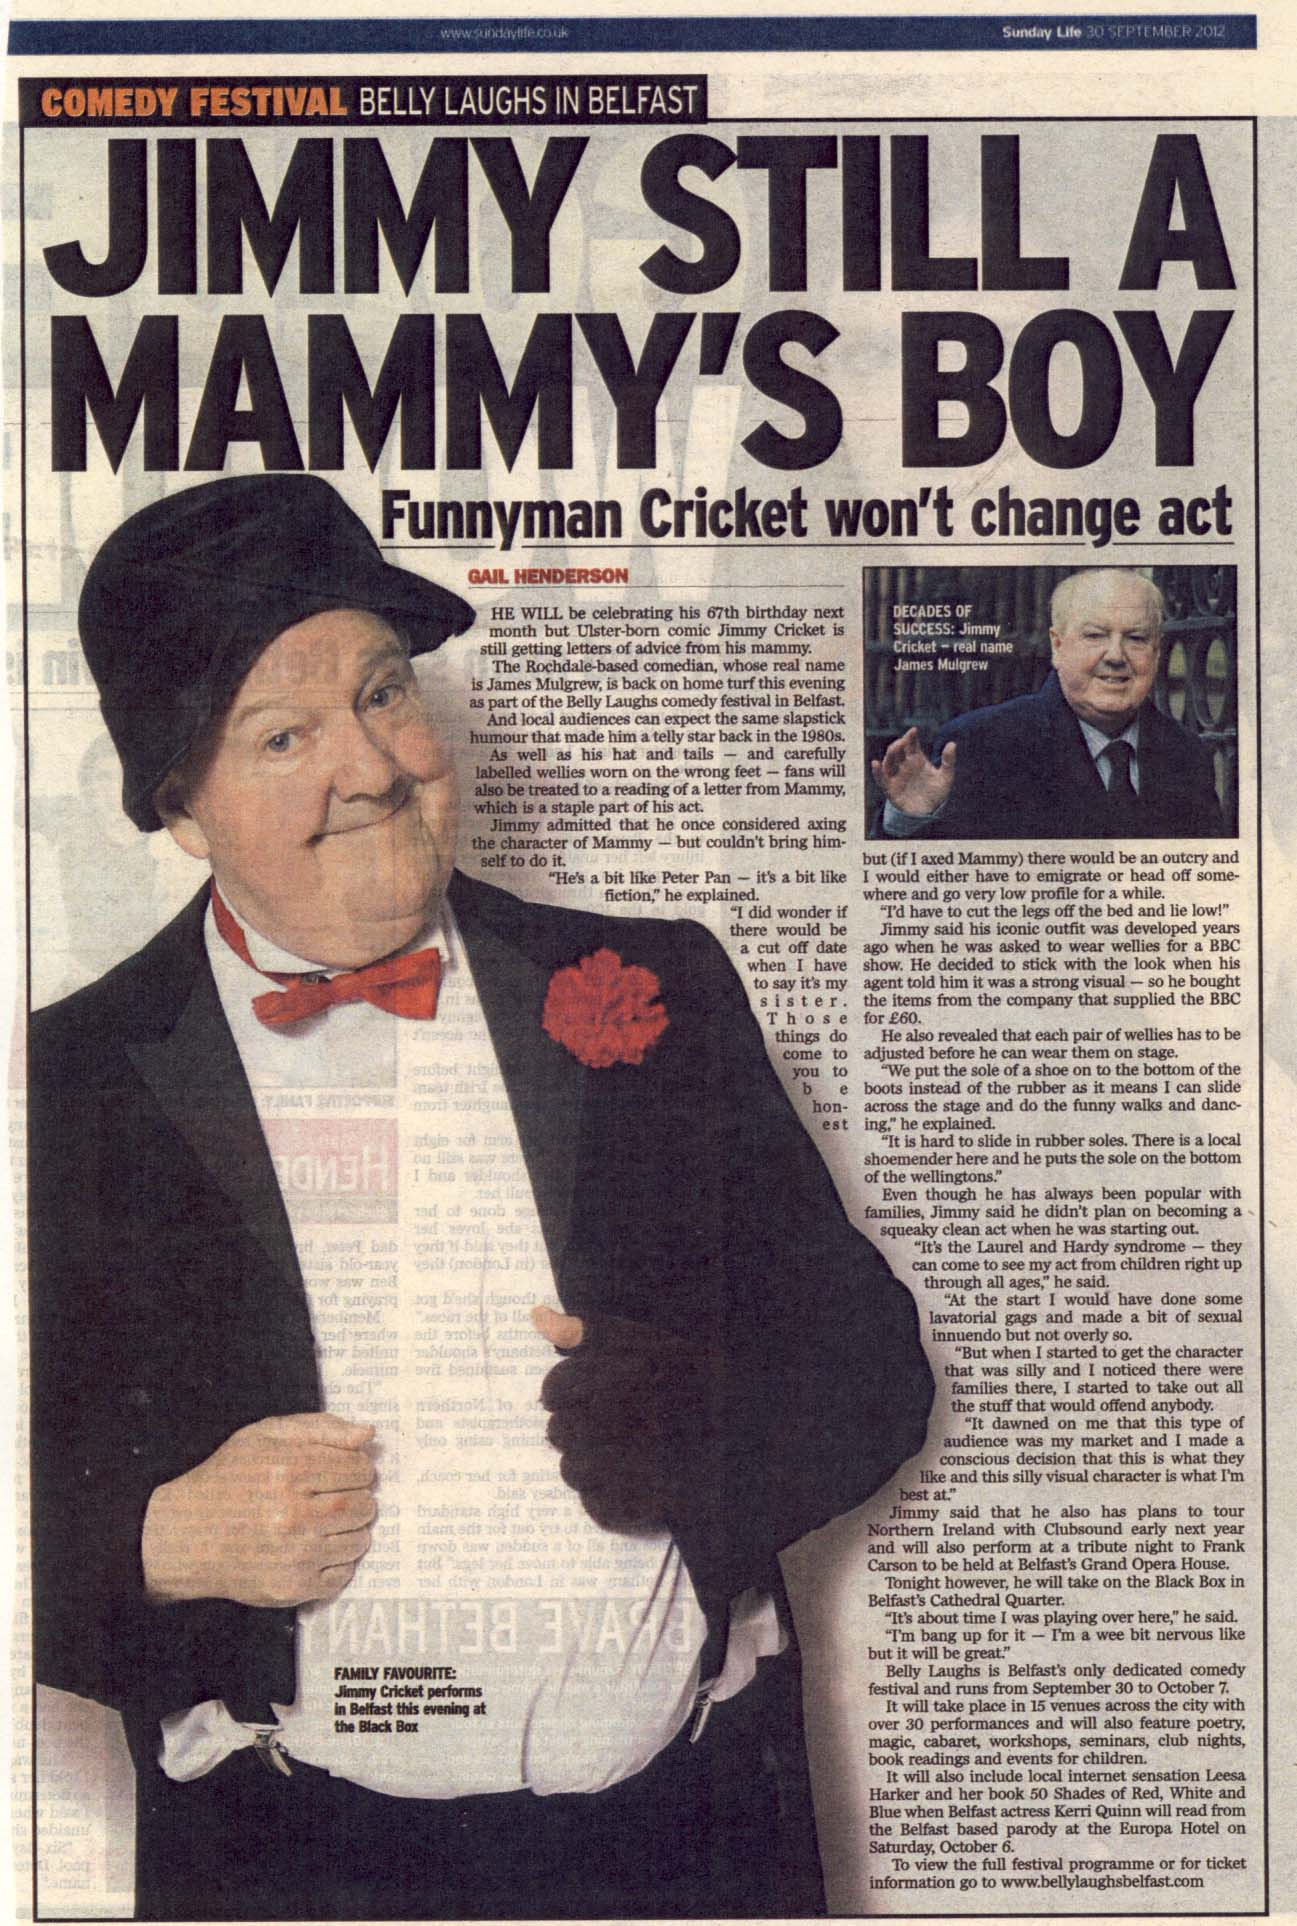 The Sunday Life article about Jimmy Cricket returning to Belfast for the festival